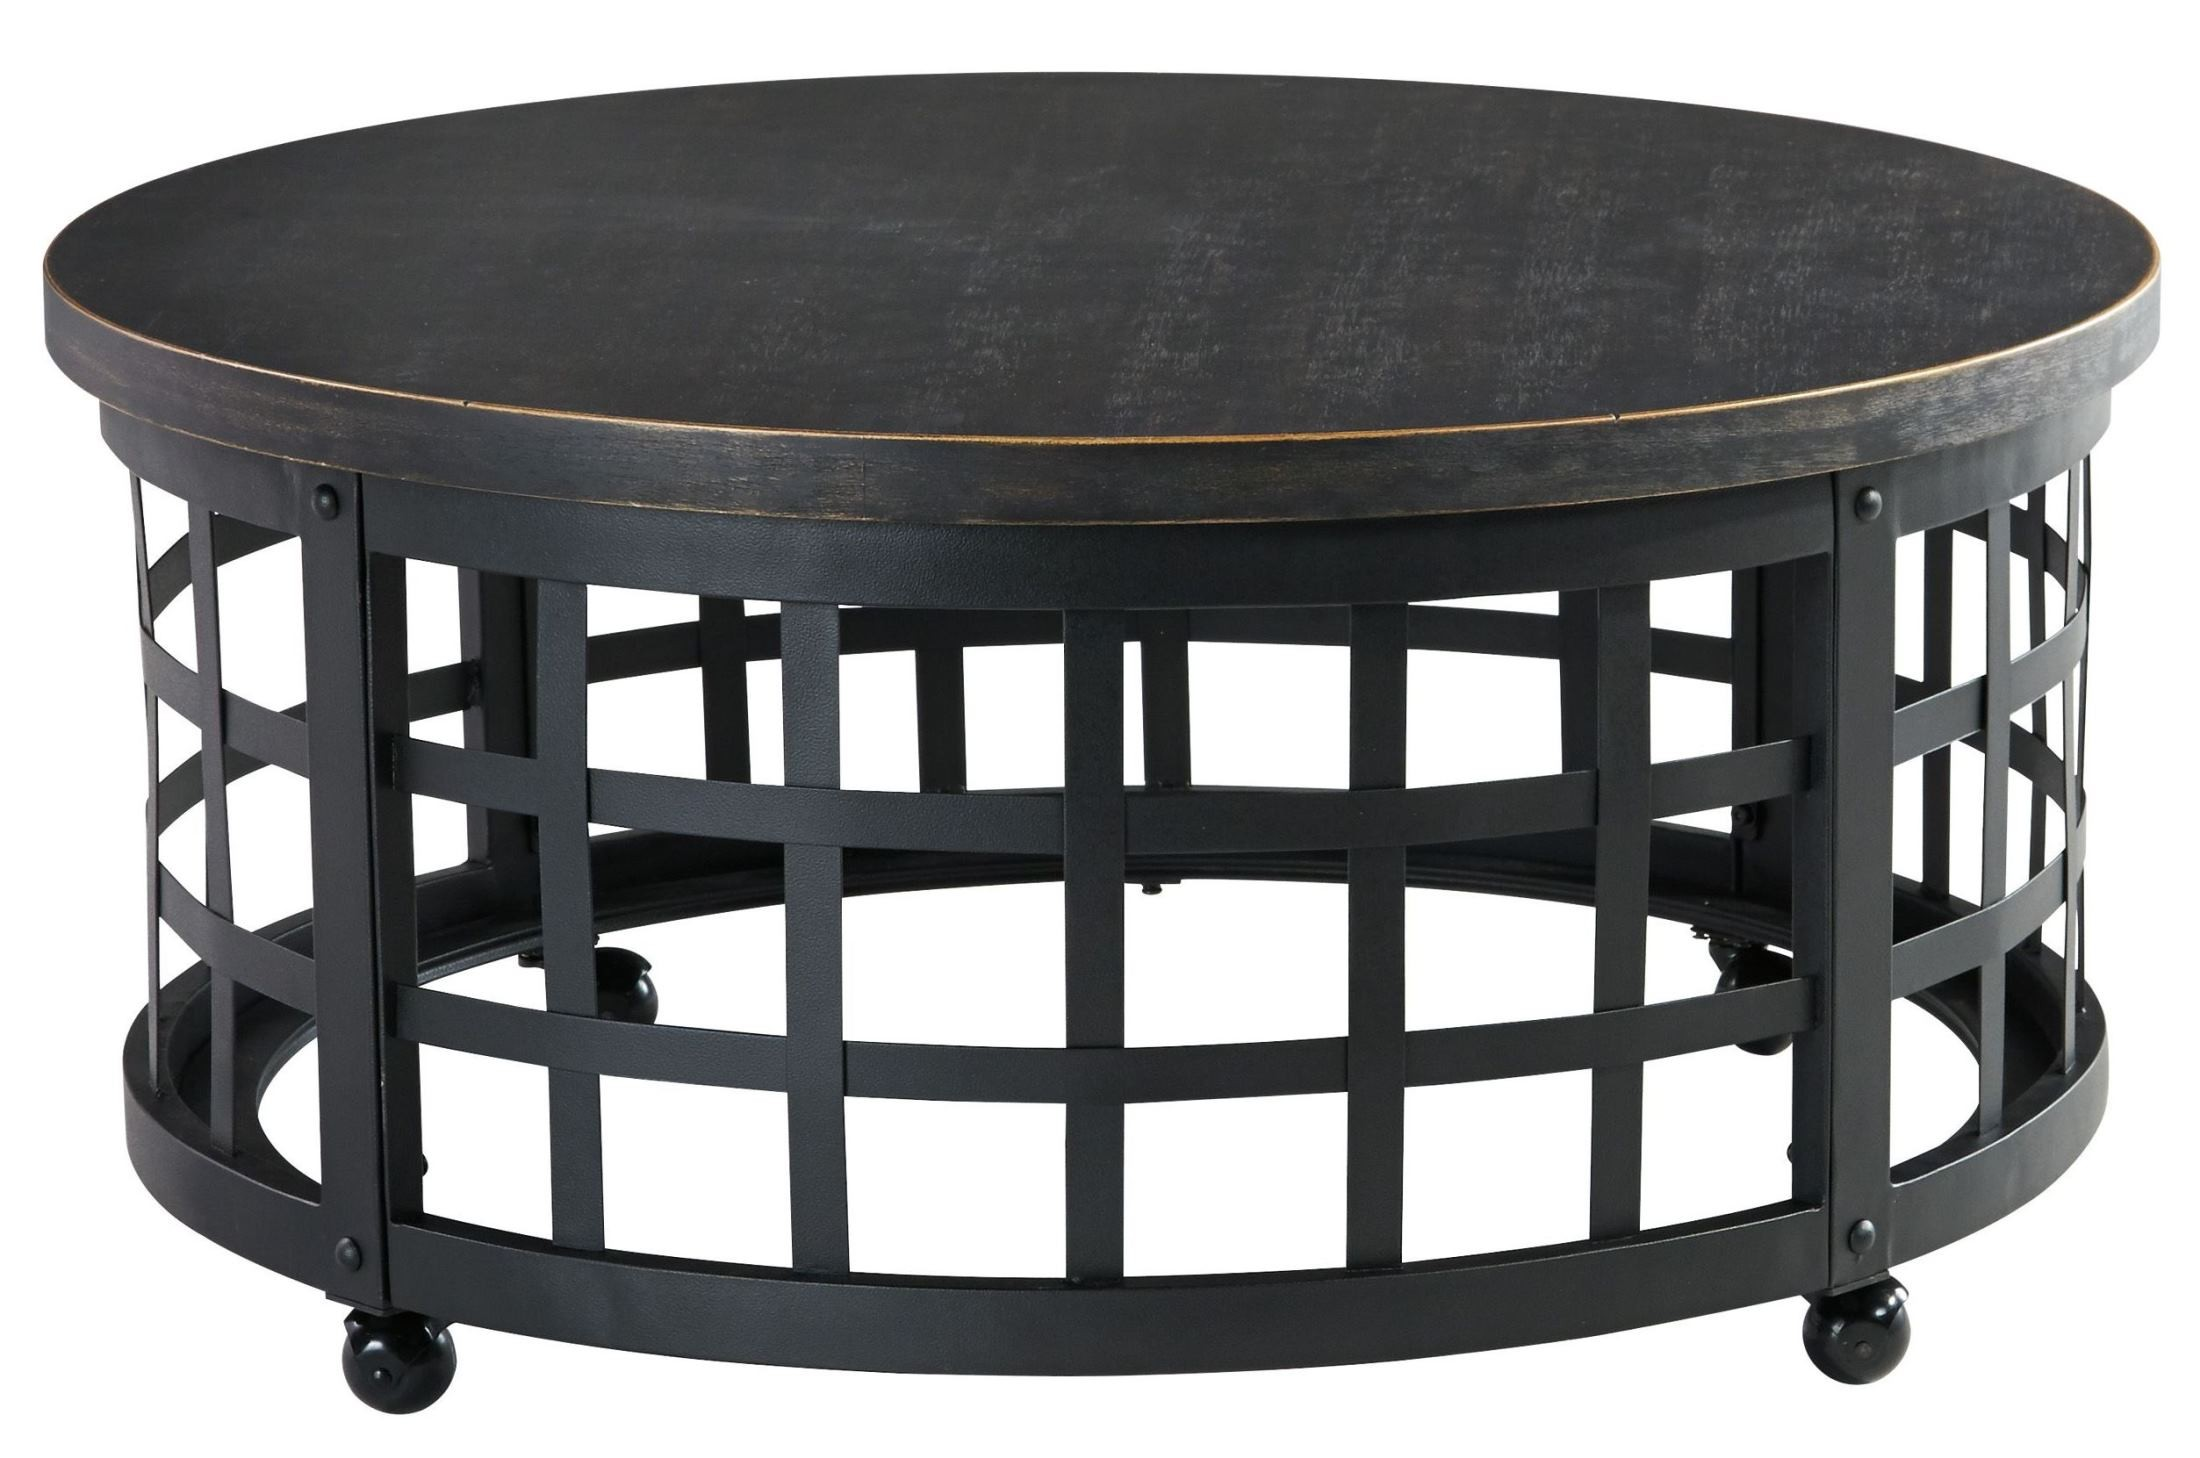 Marimon round cocktail table from ashley t746 8 Round cocktail table